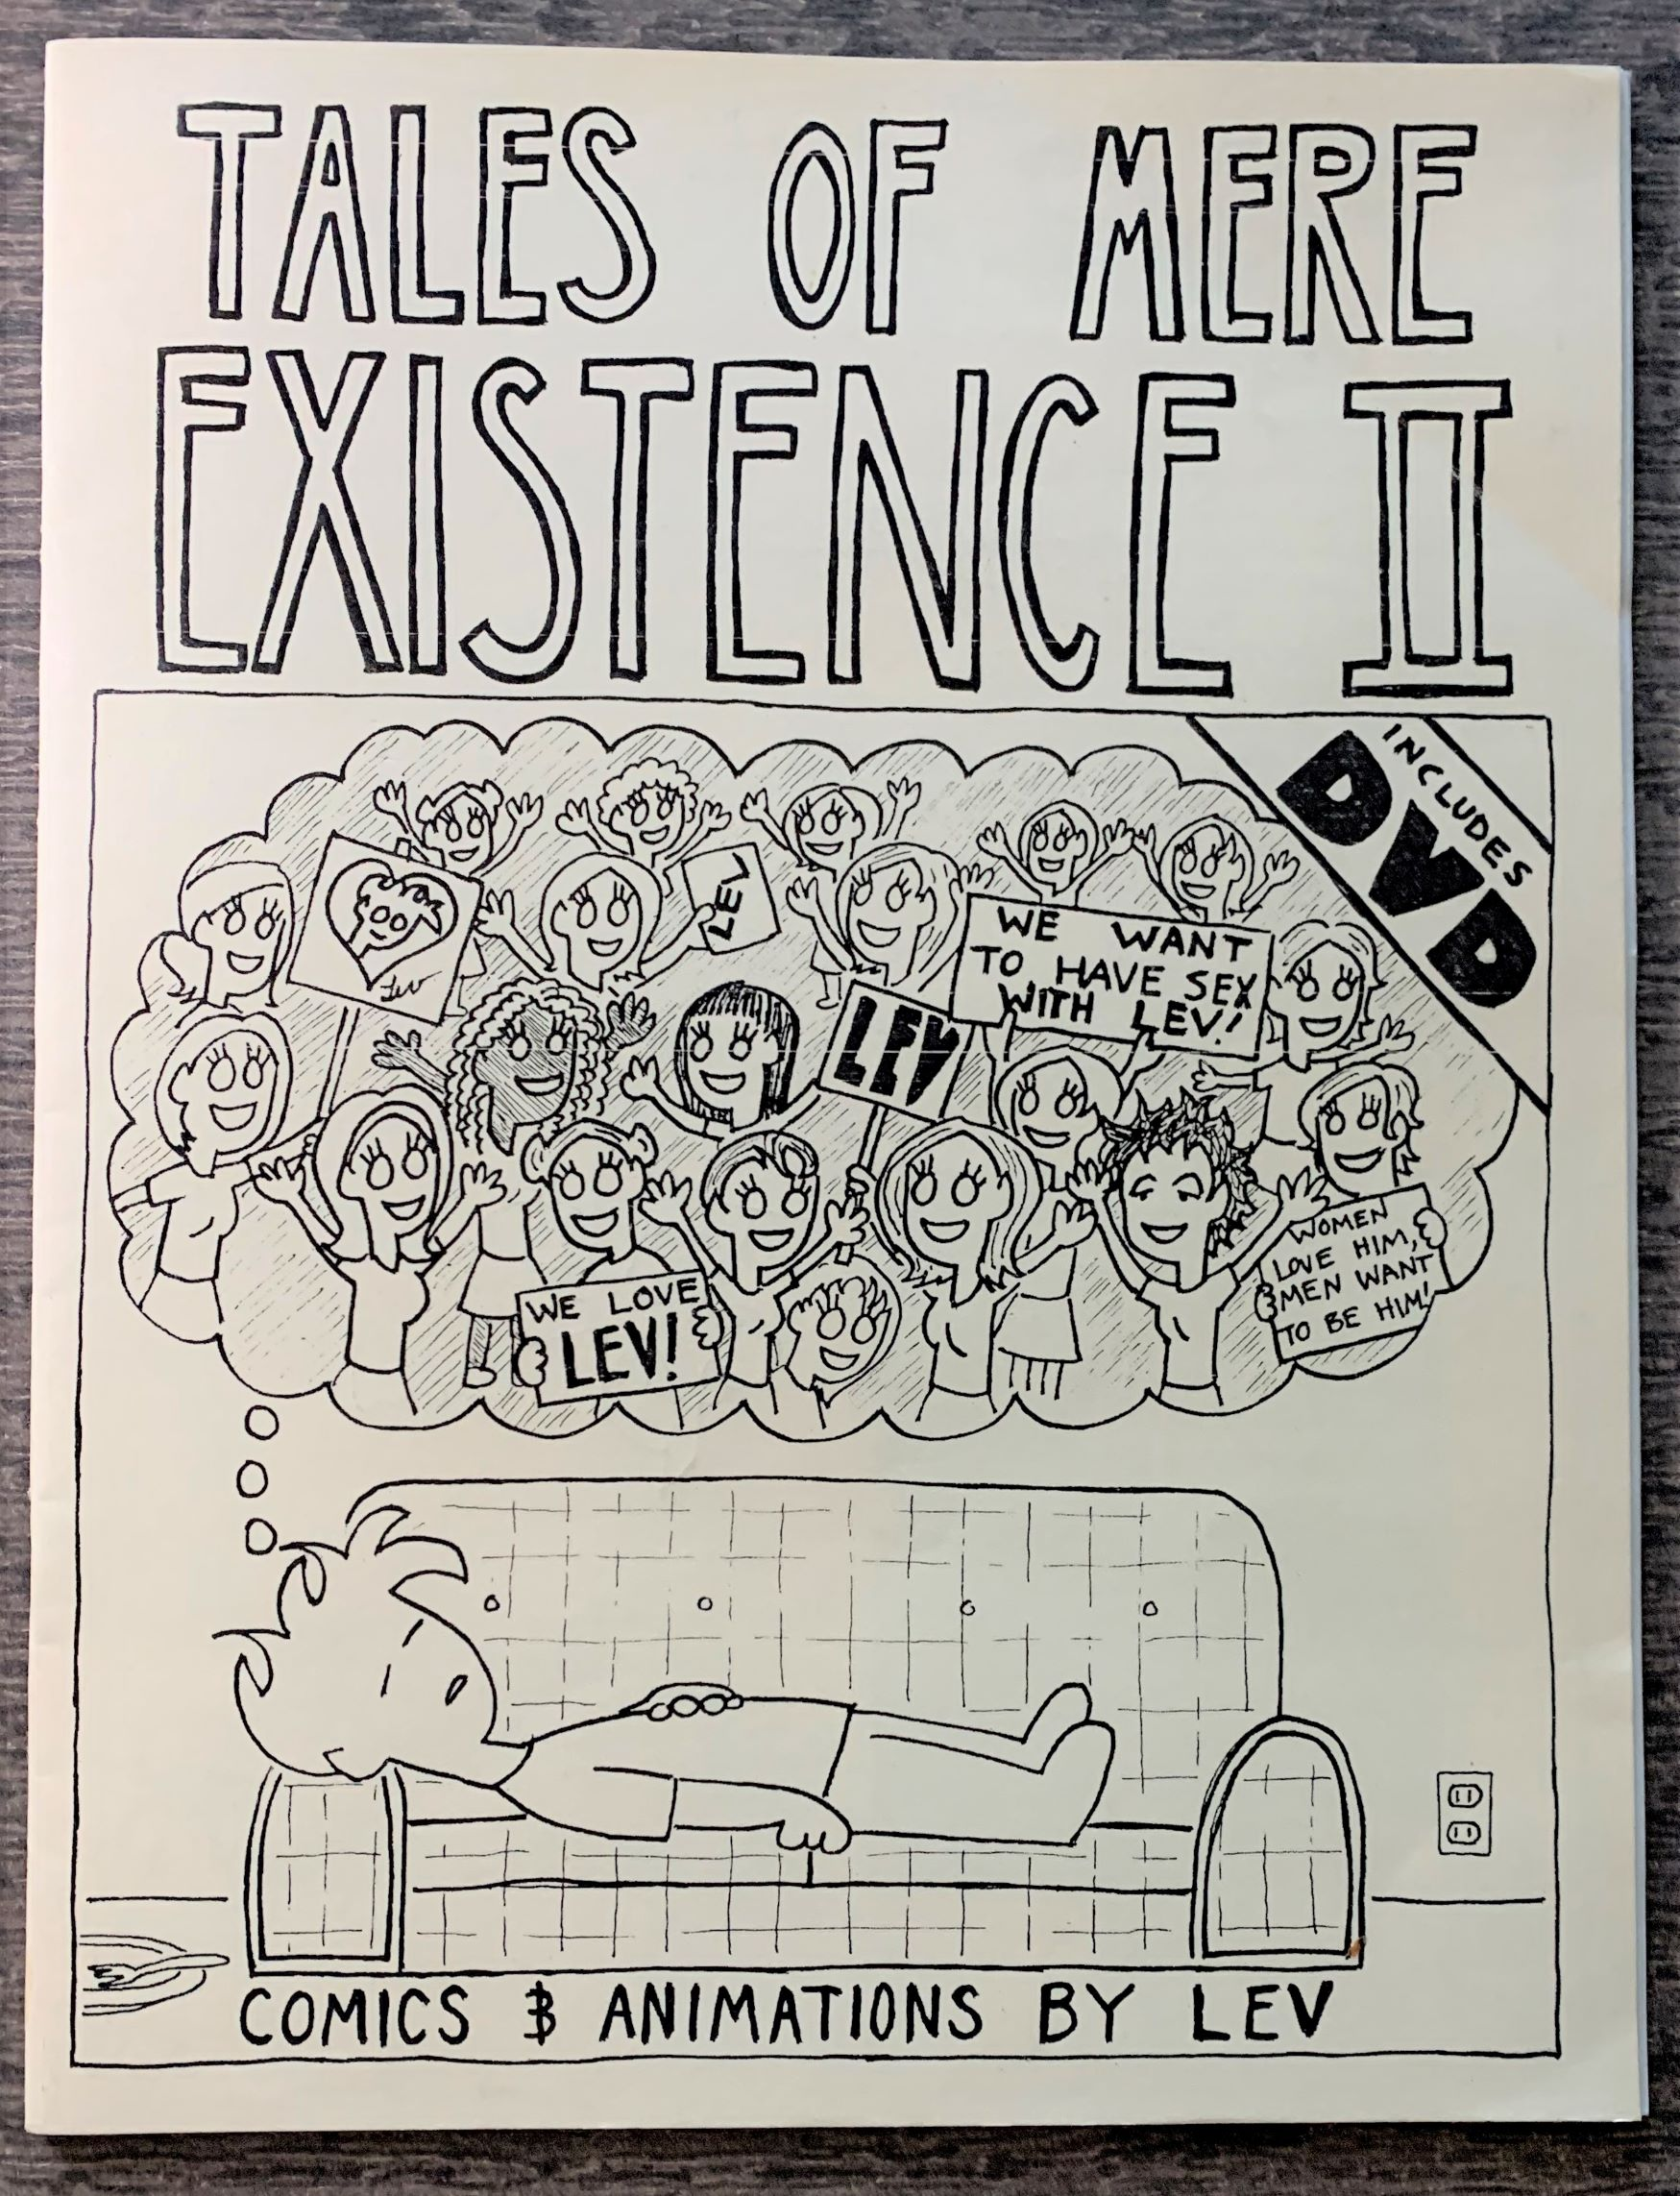 Image for Tales of Mere Existence II. Comics & Animations by Lev [cover title].